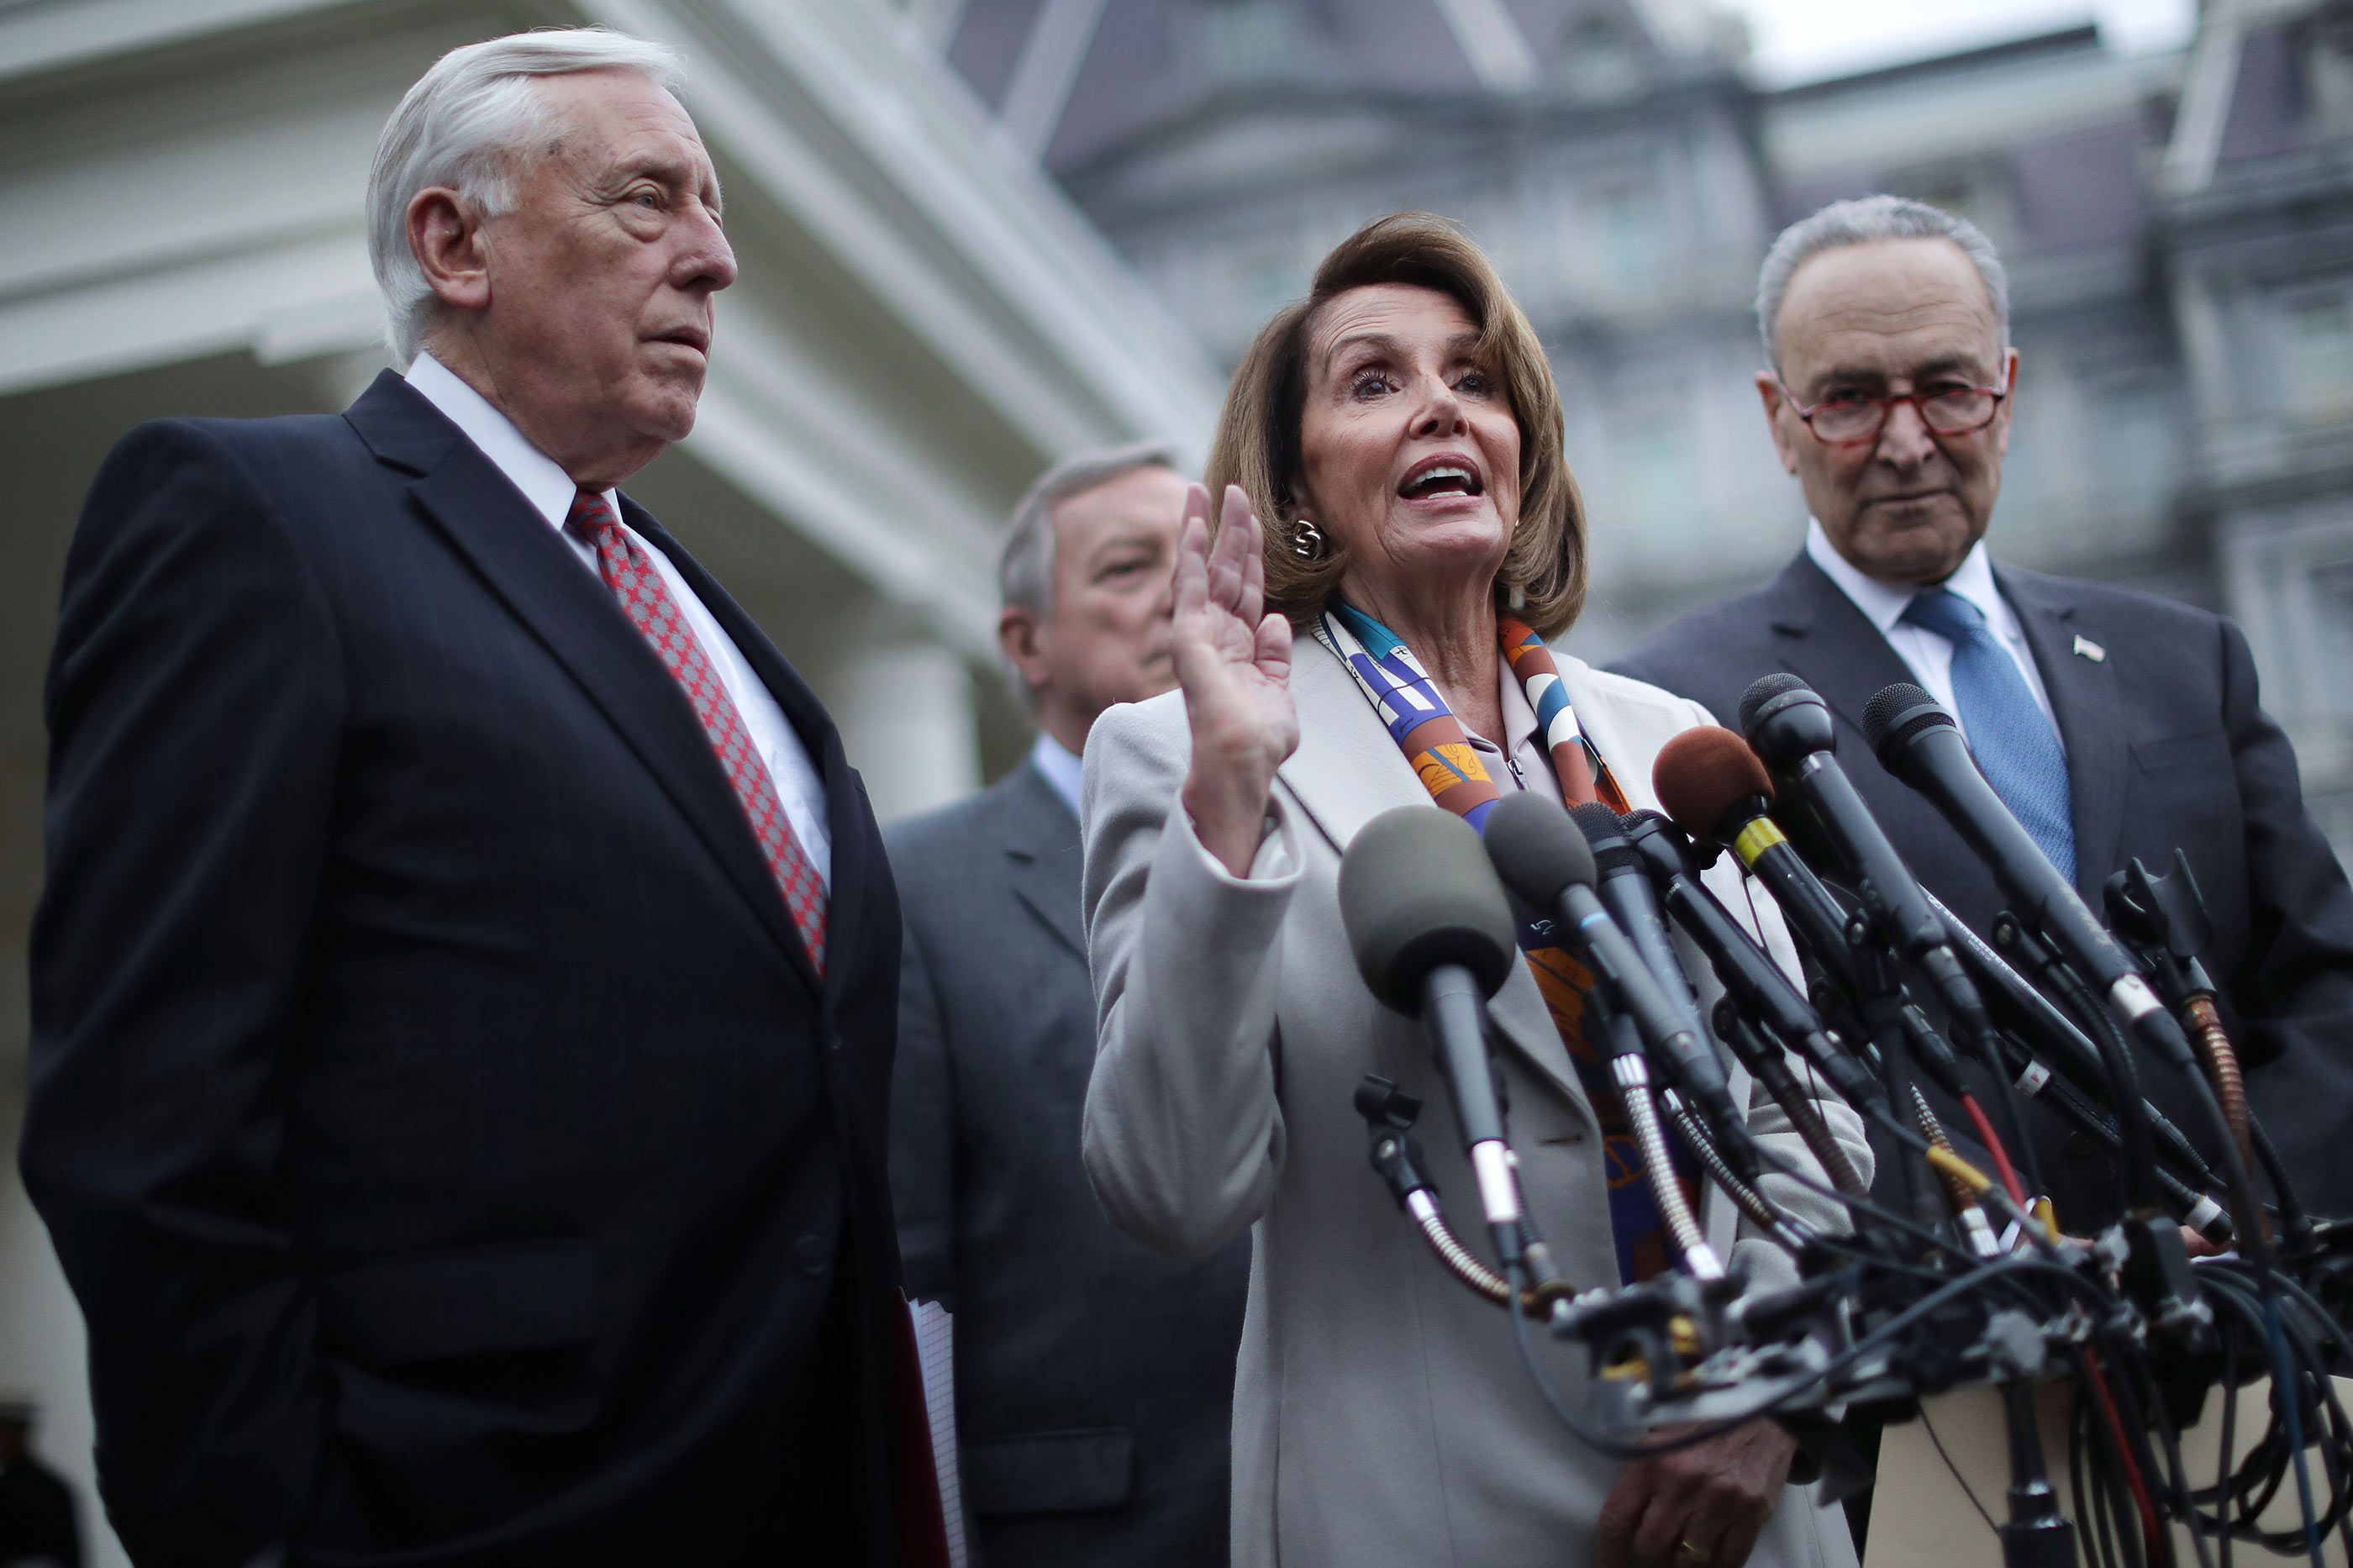 Nancy Pelosi Is Getting a Pay Raise as Speaker of the House  Money